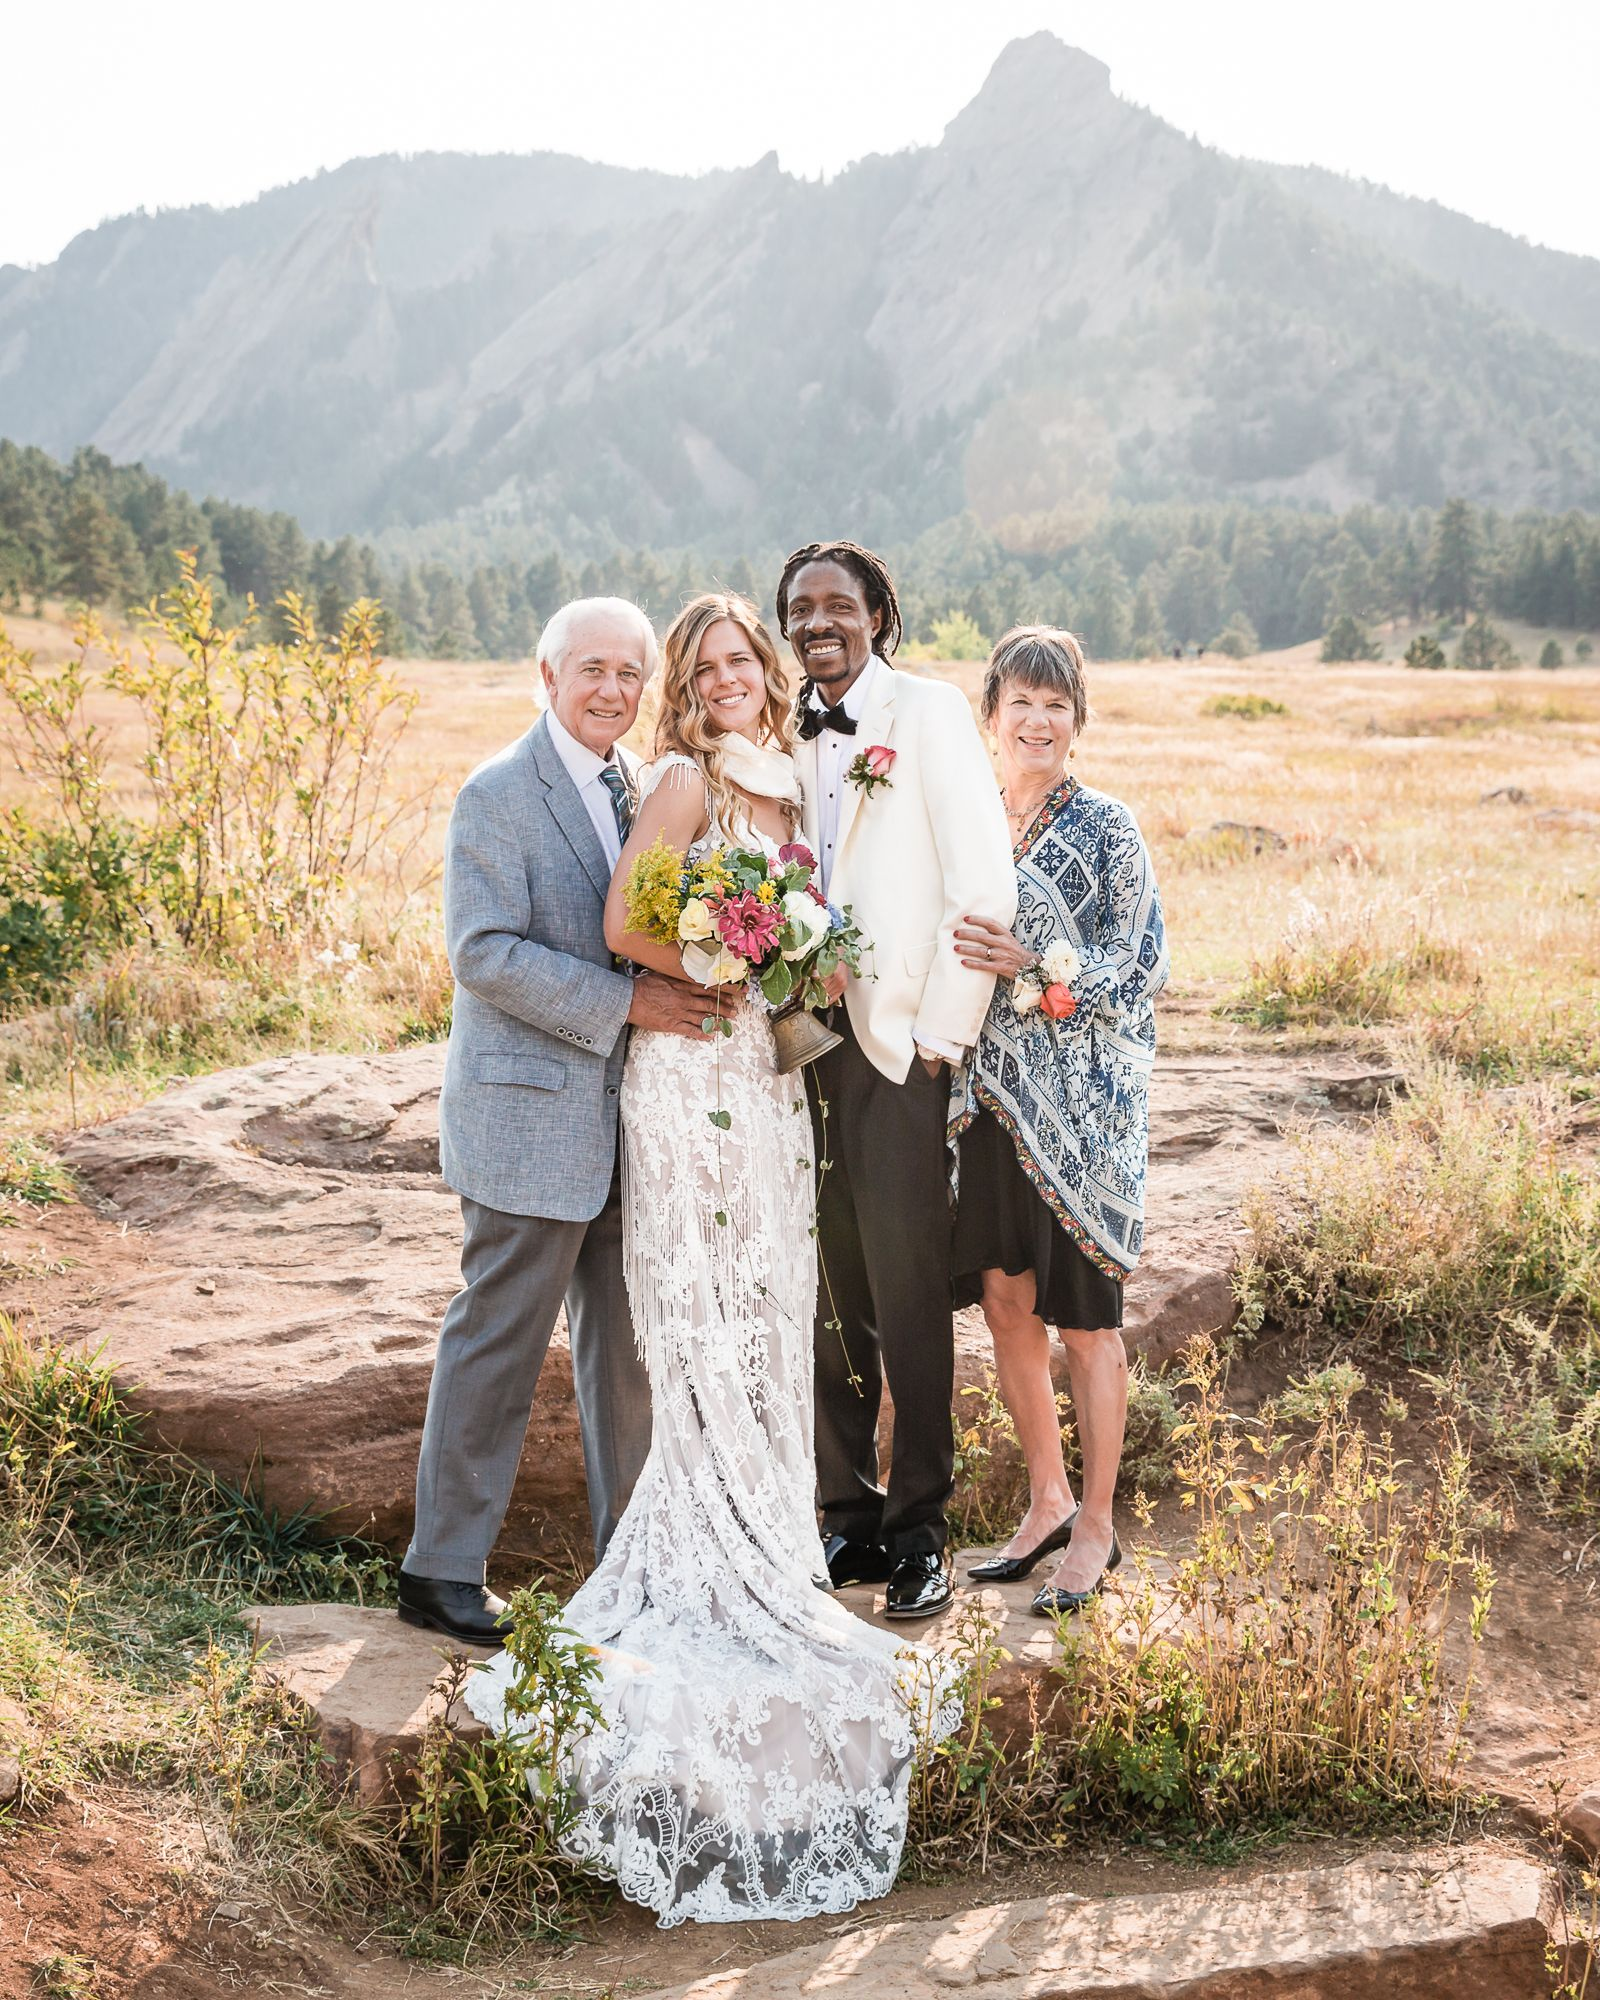 Wedding couple with parents standing in front of the flatirons in Chautauqua Park, Boulder Colorado.